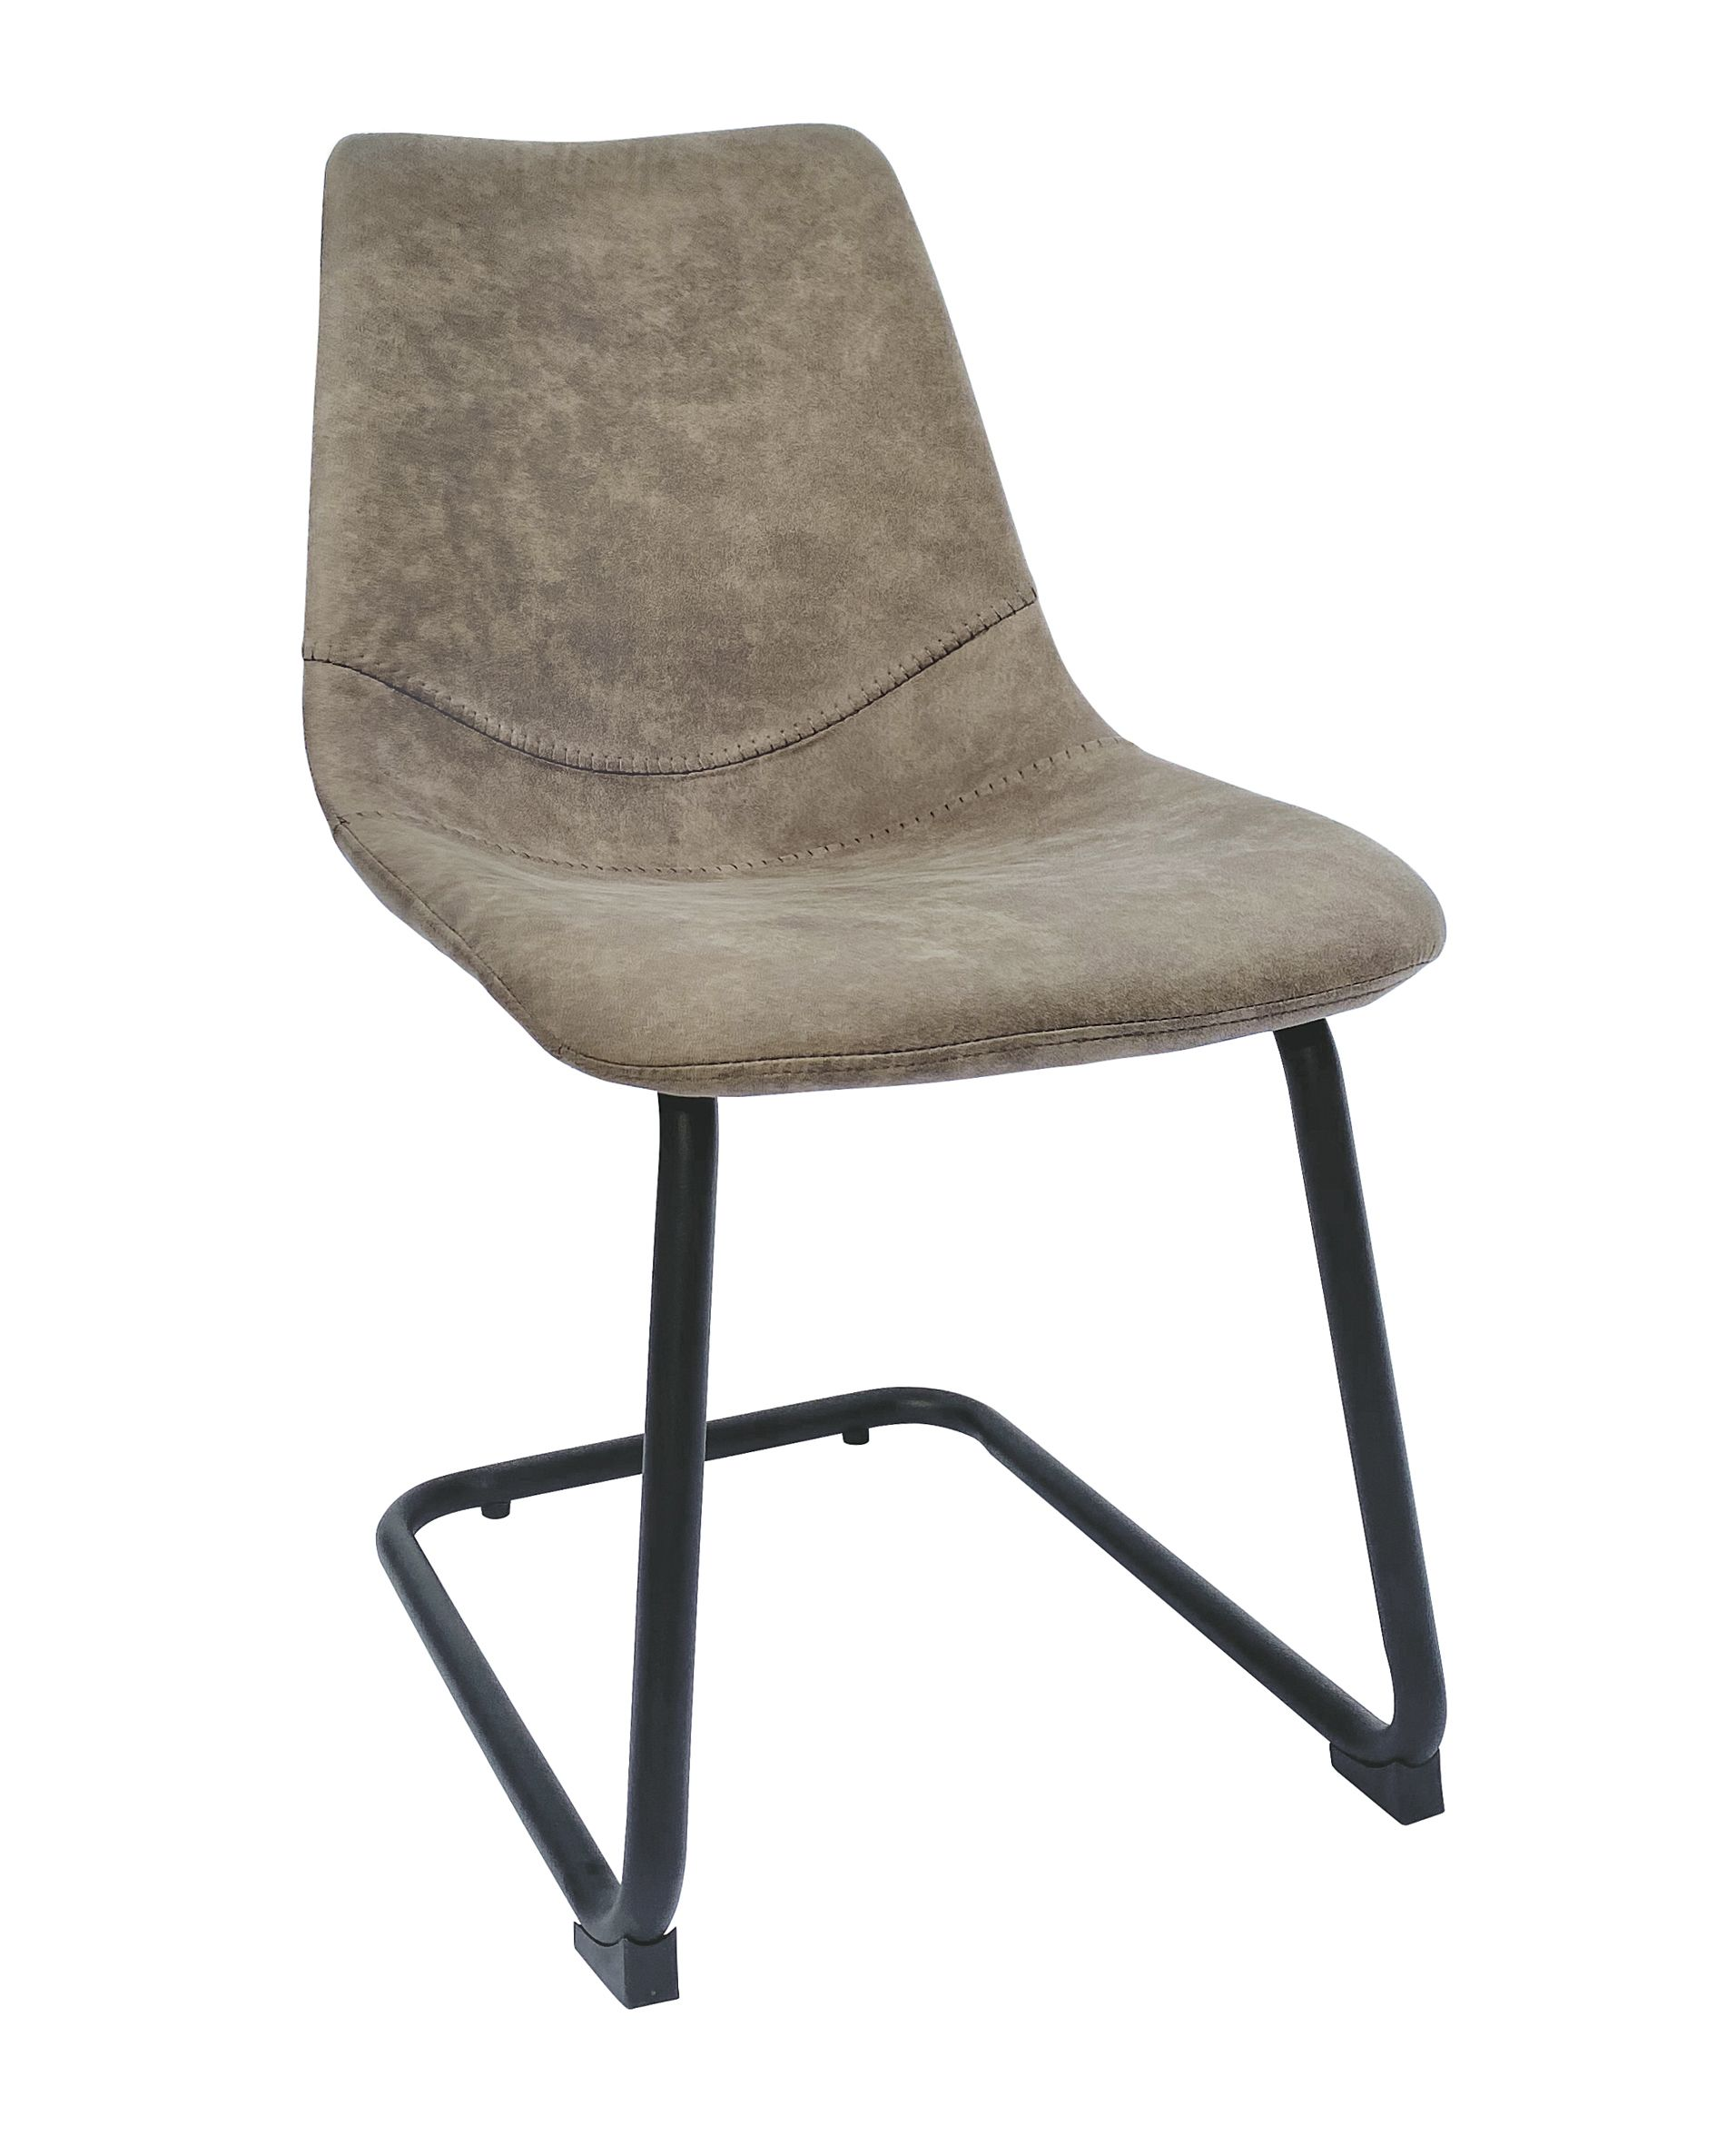 AUBURN Chair Putty PU Leather